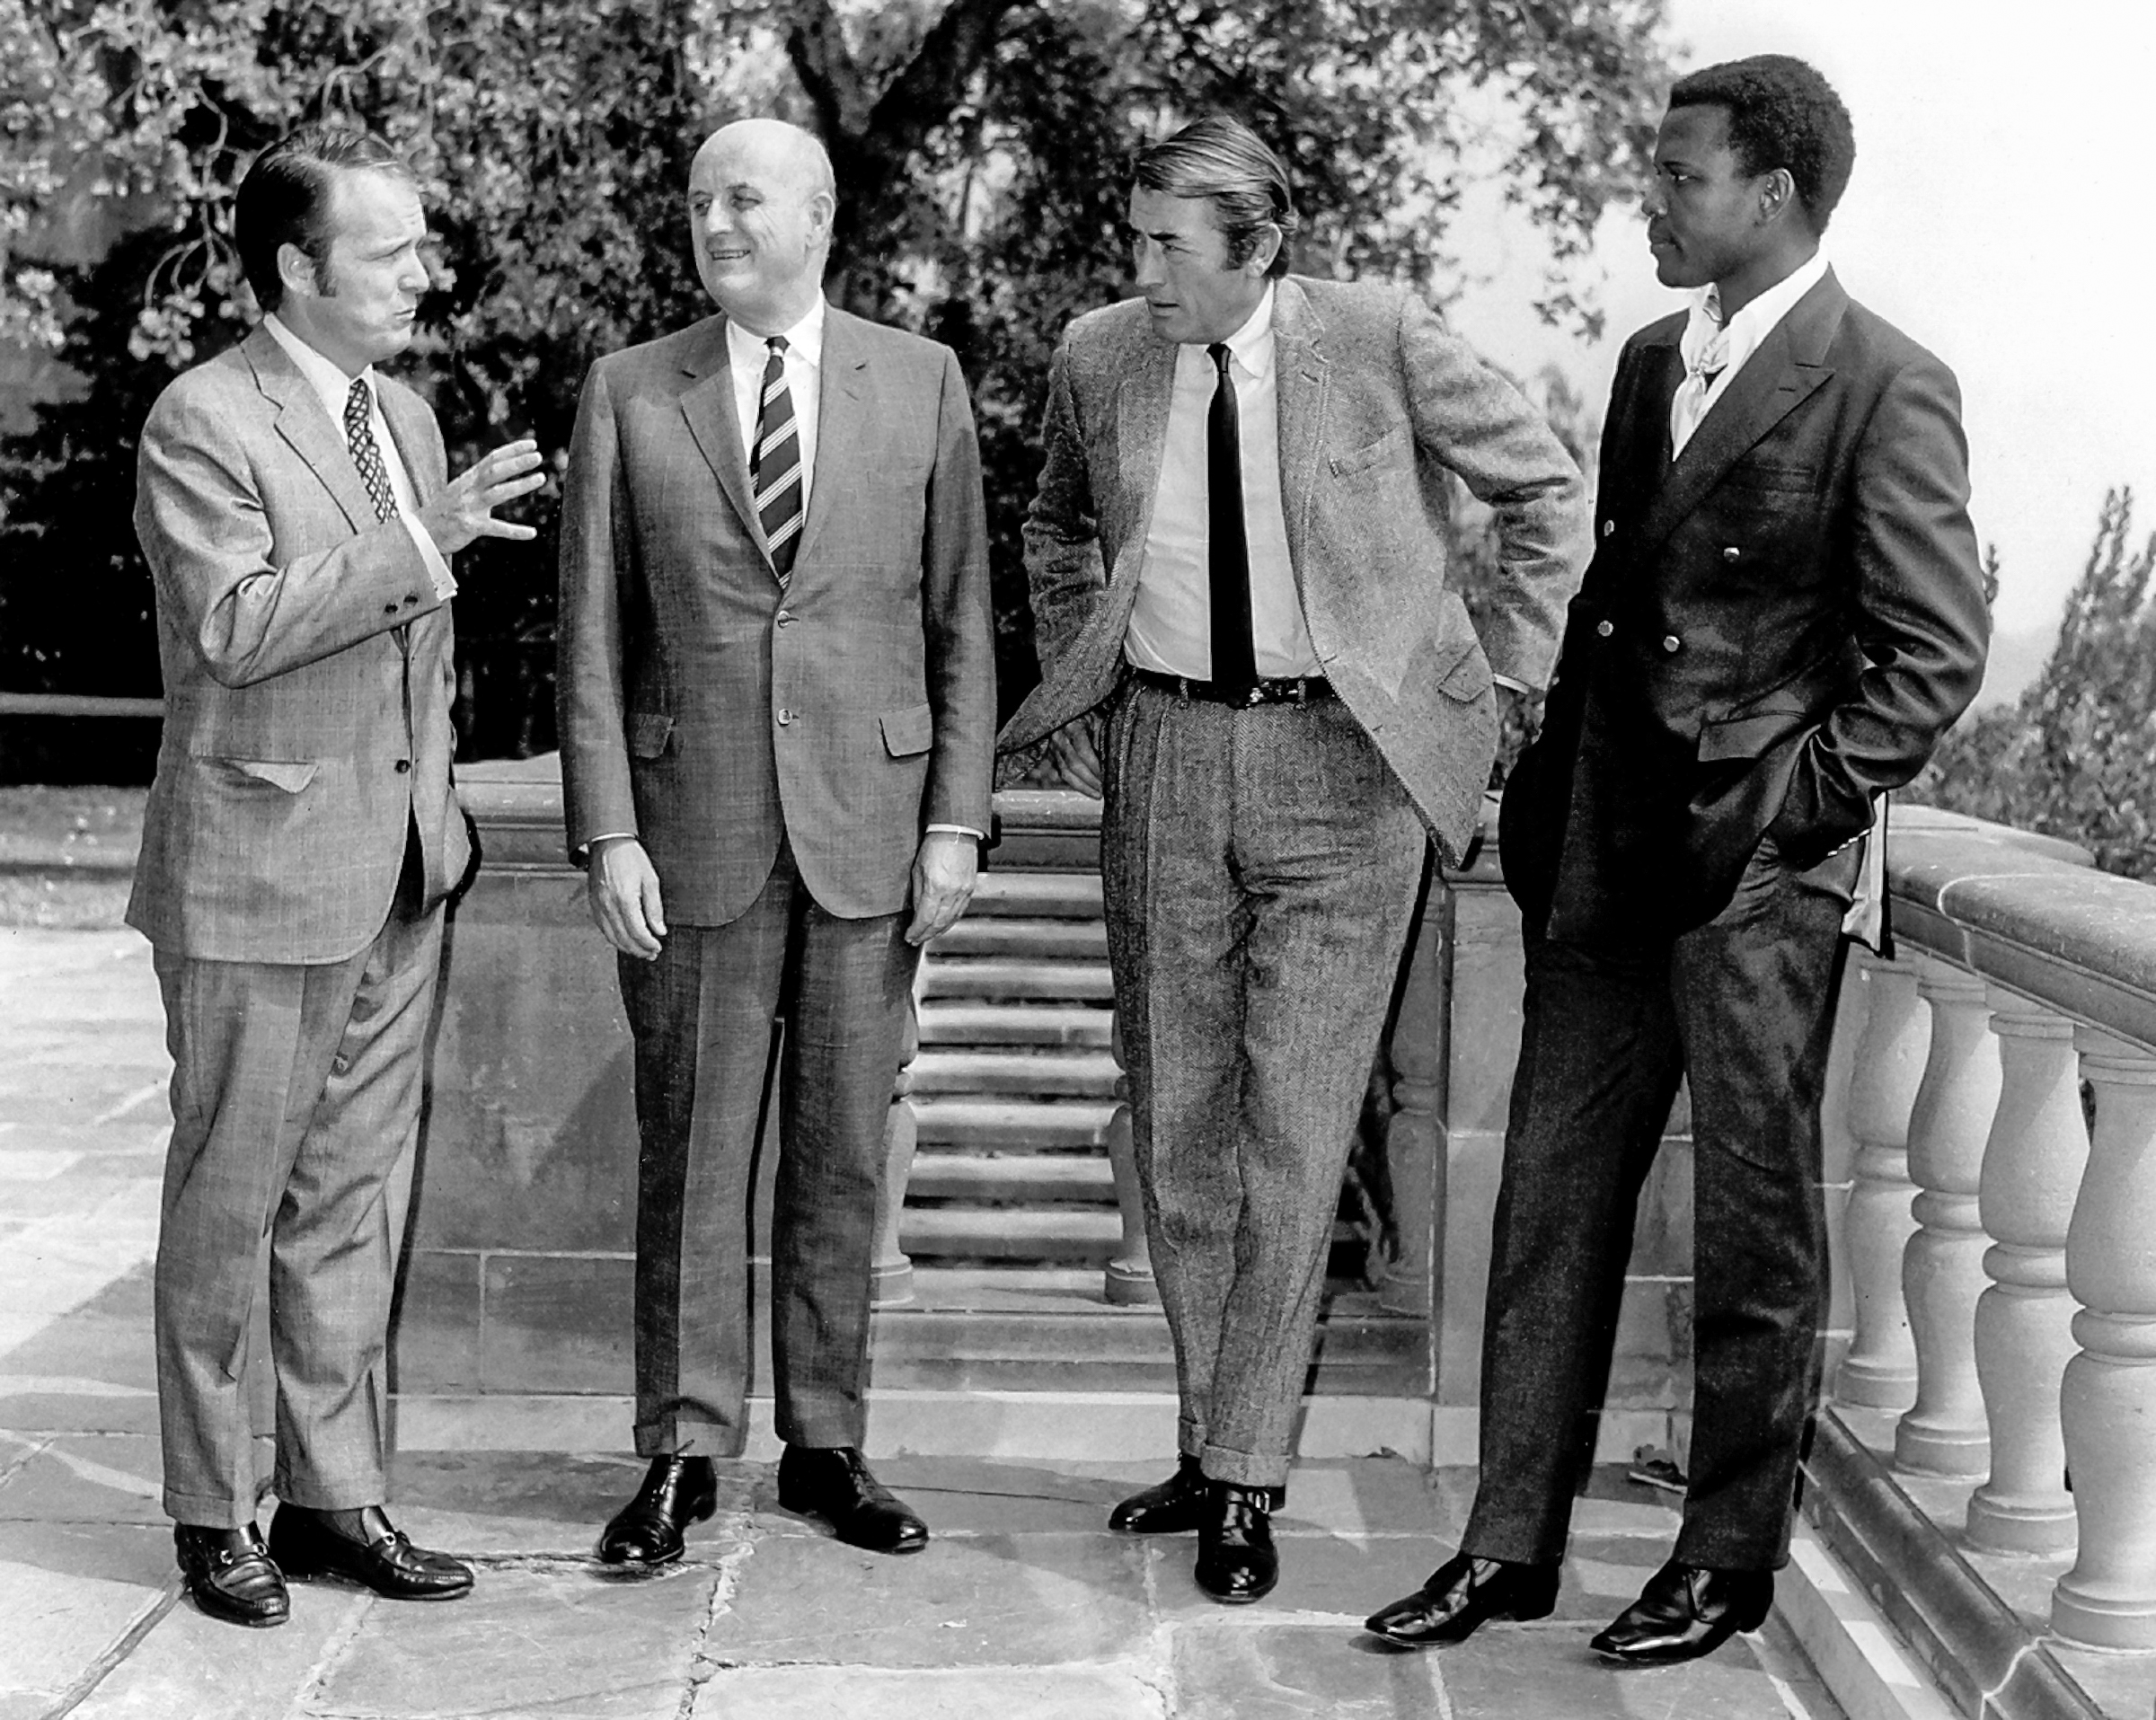 AFI's Founding Chairs and Leaders: George Stevens, Jr., Roger Stevens, Gregory Peck, Sidney Poitier.